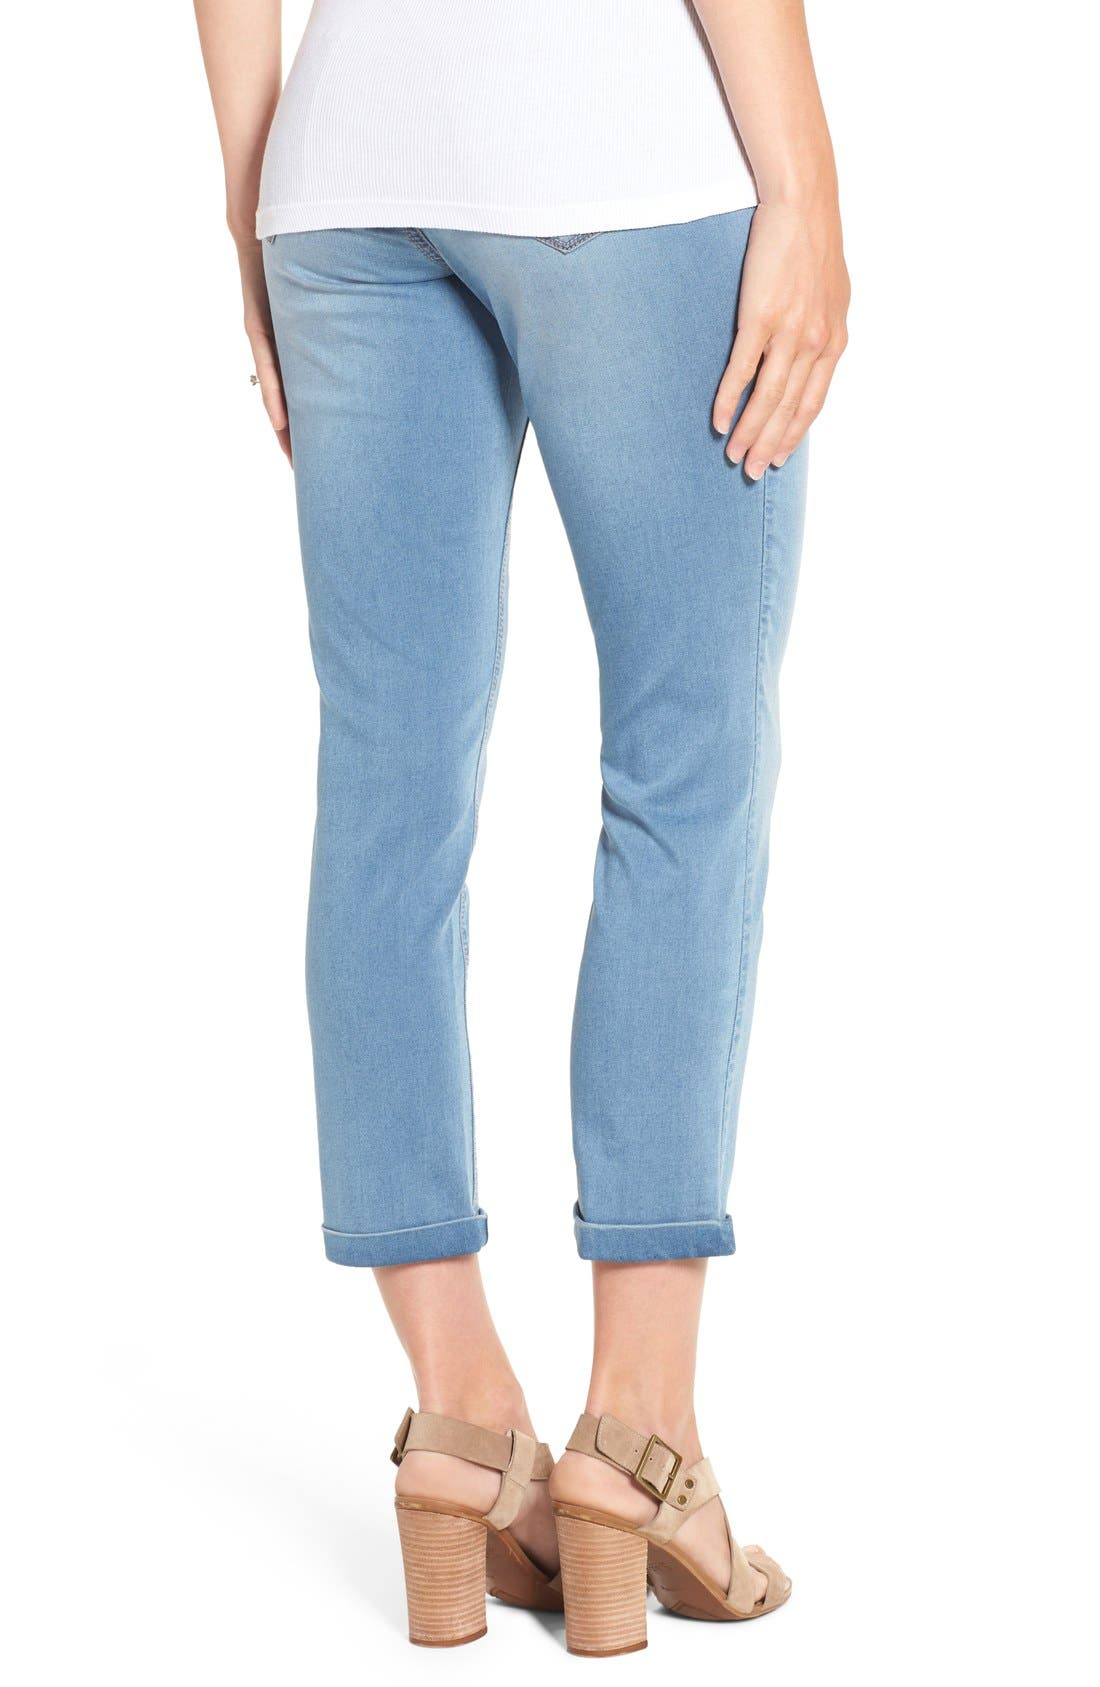 'Ankle Biter' Over the Bump Rolled Cuff Maternity Skinny Jeans,                             Alternate thumbnail 2, color,                             452